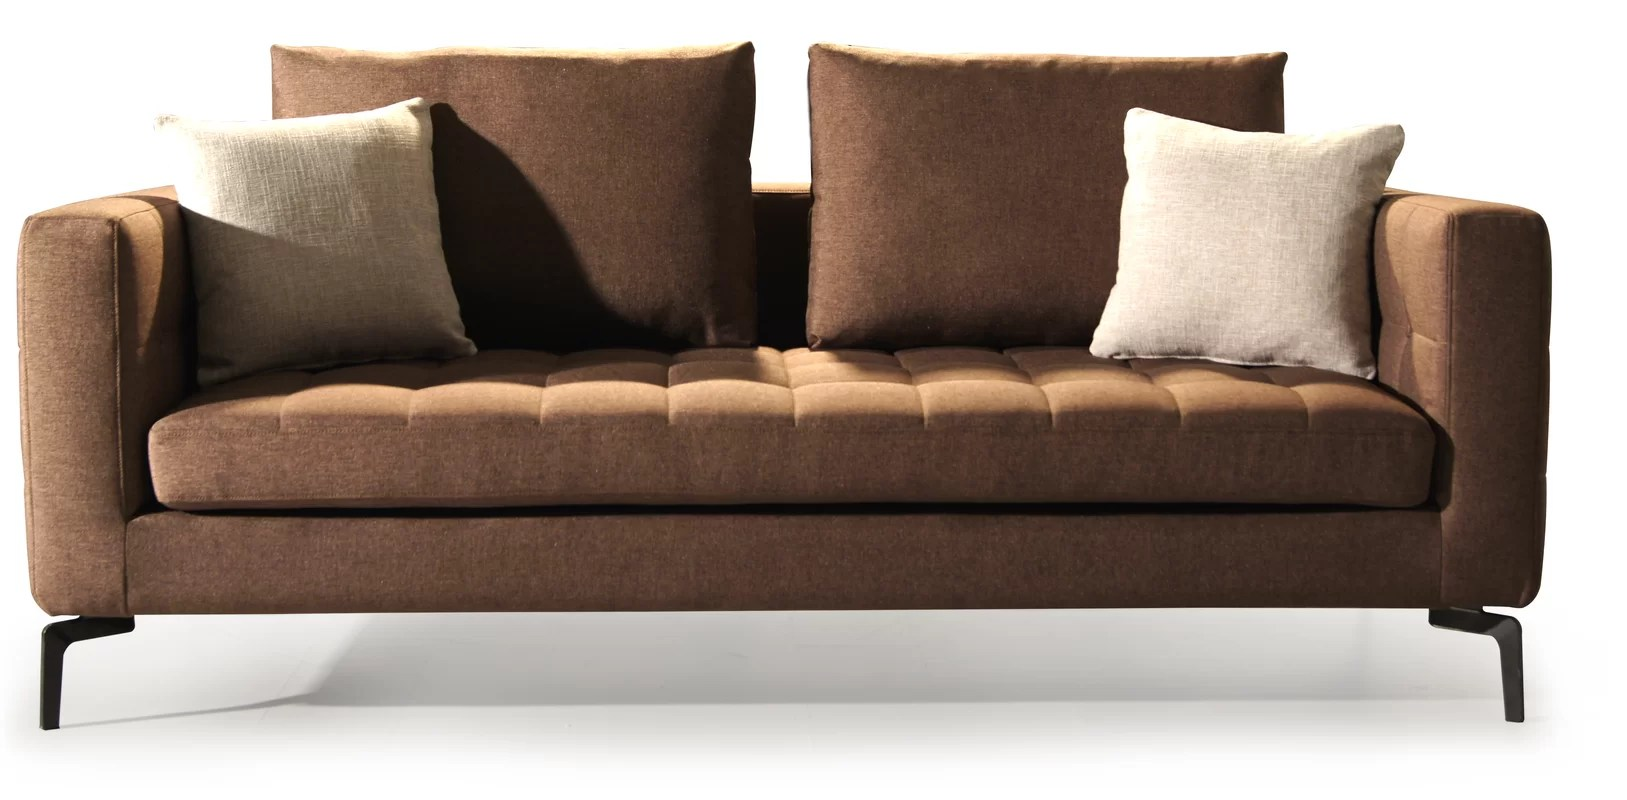 pb comfort sofa reviews leather sectional macys square modern arm sofas couches allmodern ...